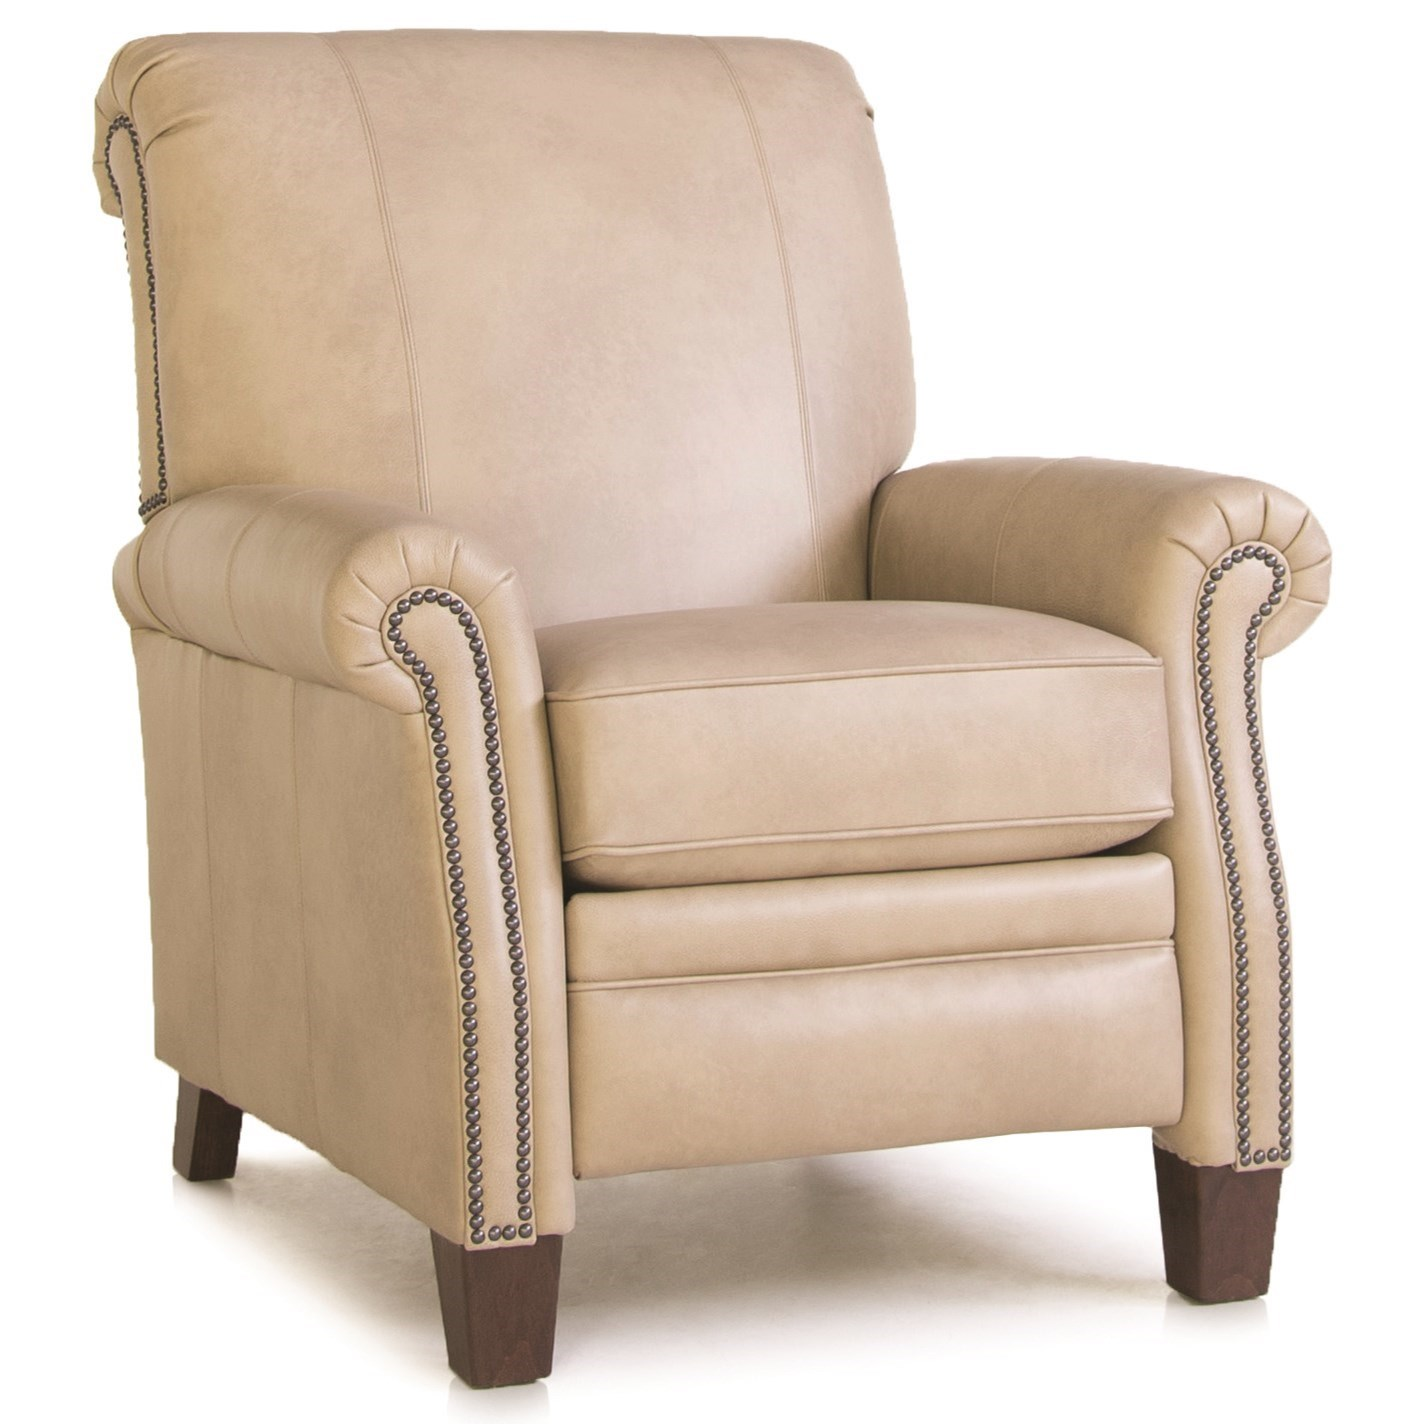 704 High Leg Pressback Recliner by Smith Brothers at Coconis Furniture & Mattress 1st